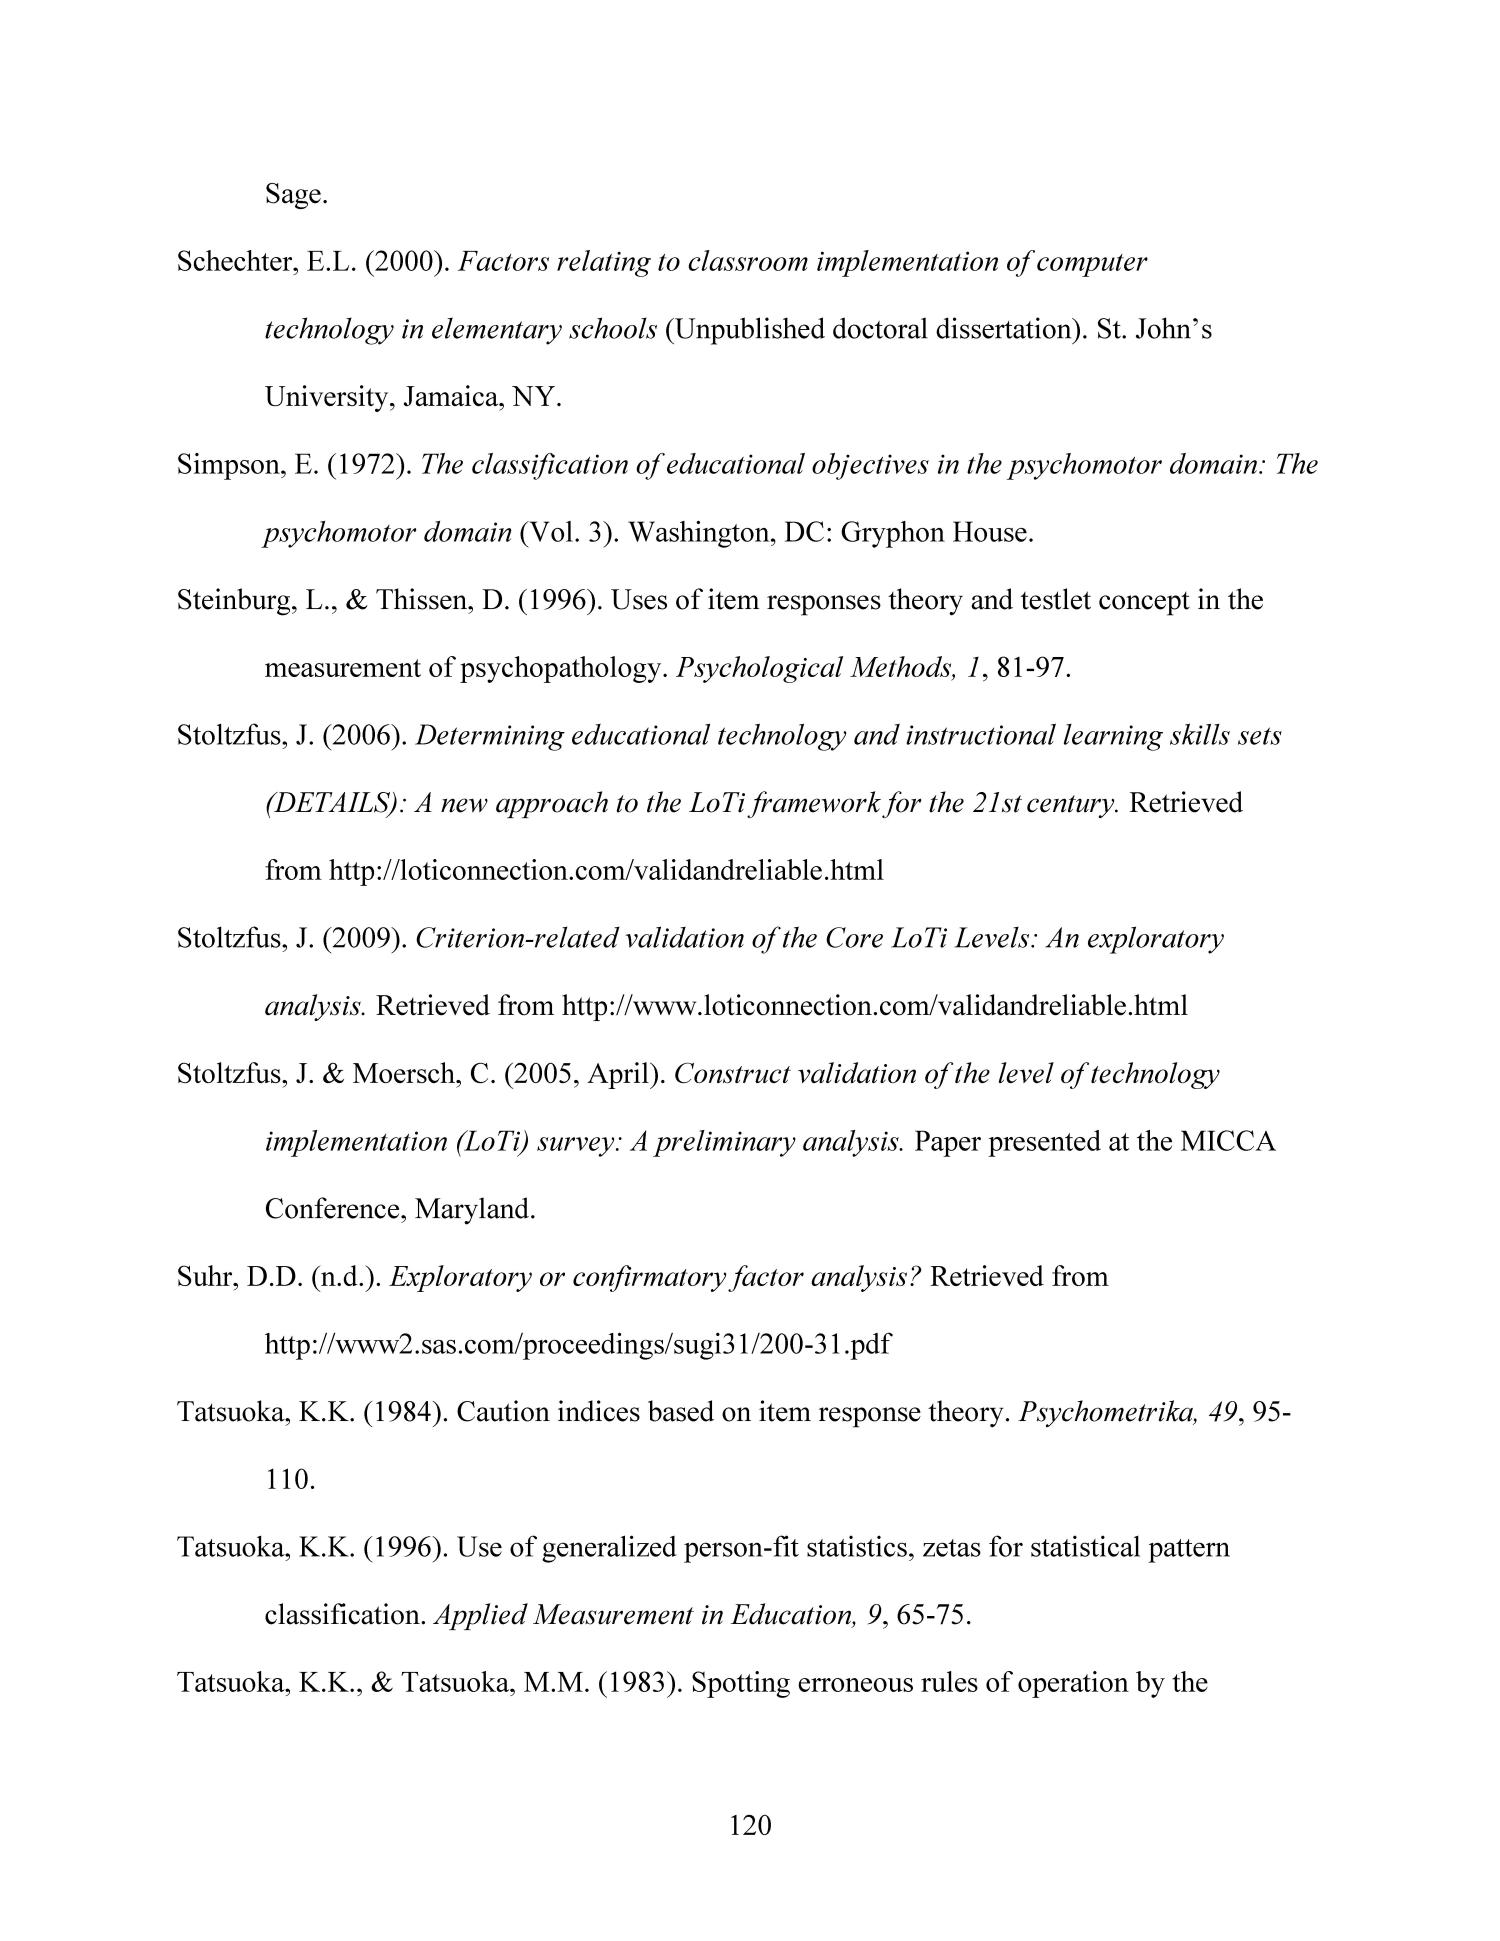 digital library of theses and dissertations Abstract the networked digital library of theses and dissertations (ndltd) is a collaborative effort of universities around the world to promote creating, archiving, distributing and accessing electronic theses and dissertations (etds) since its inception in 1996, over a hundred universities have joined the initiative,.